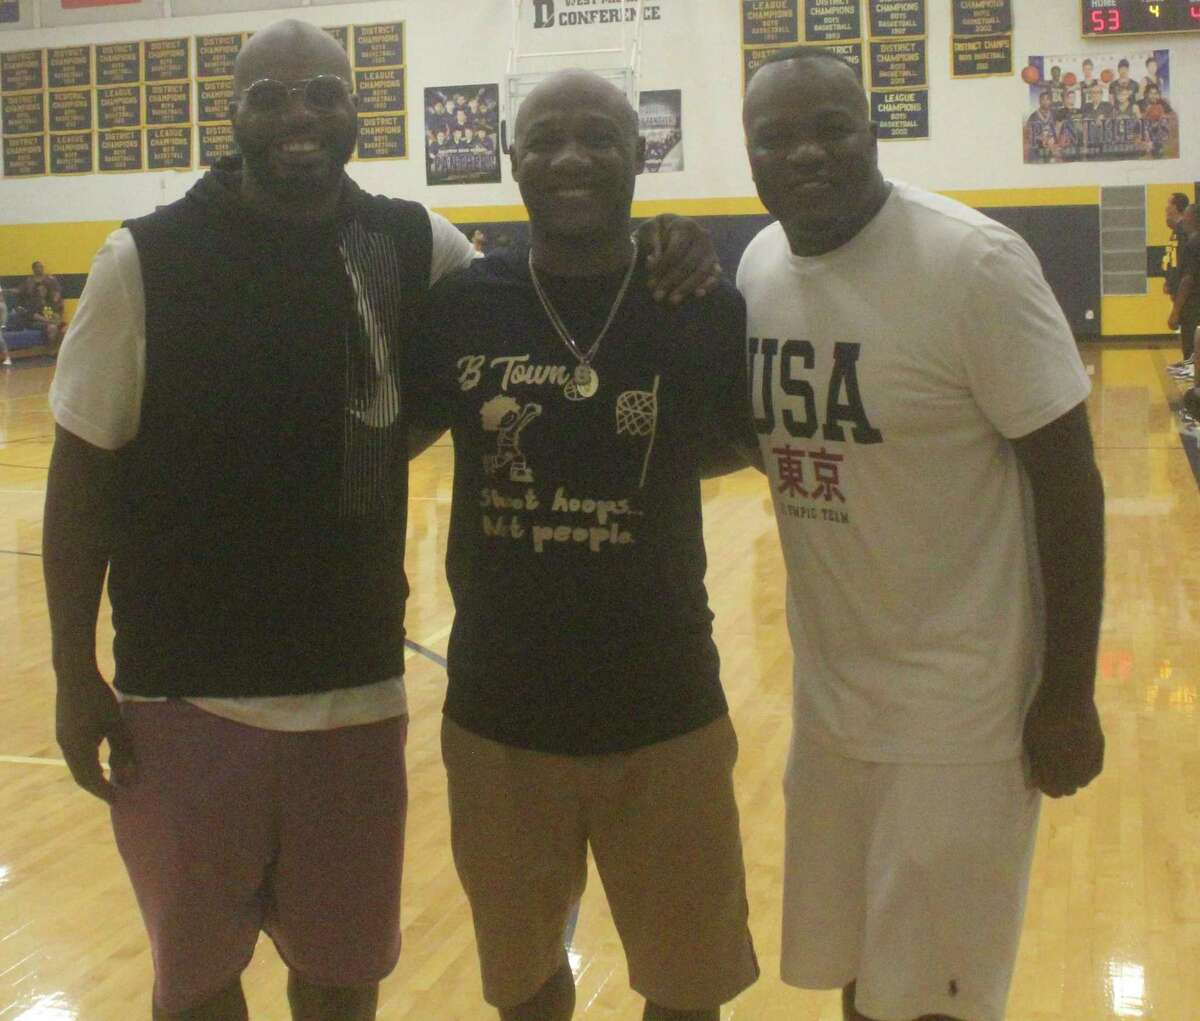 Former Baldwin athletic director Shawn Williams (center) is pictured with fellow Baldwin alums Donte Hill (left) and Ira Childress at Saturday's alumni basketball game. (Star photo/John Raffel)